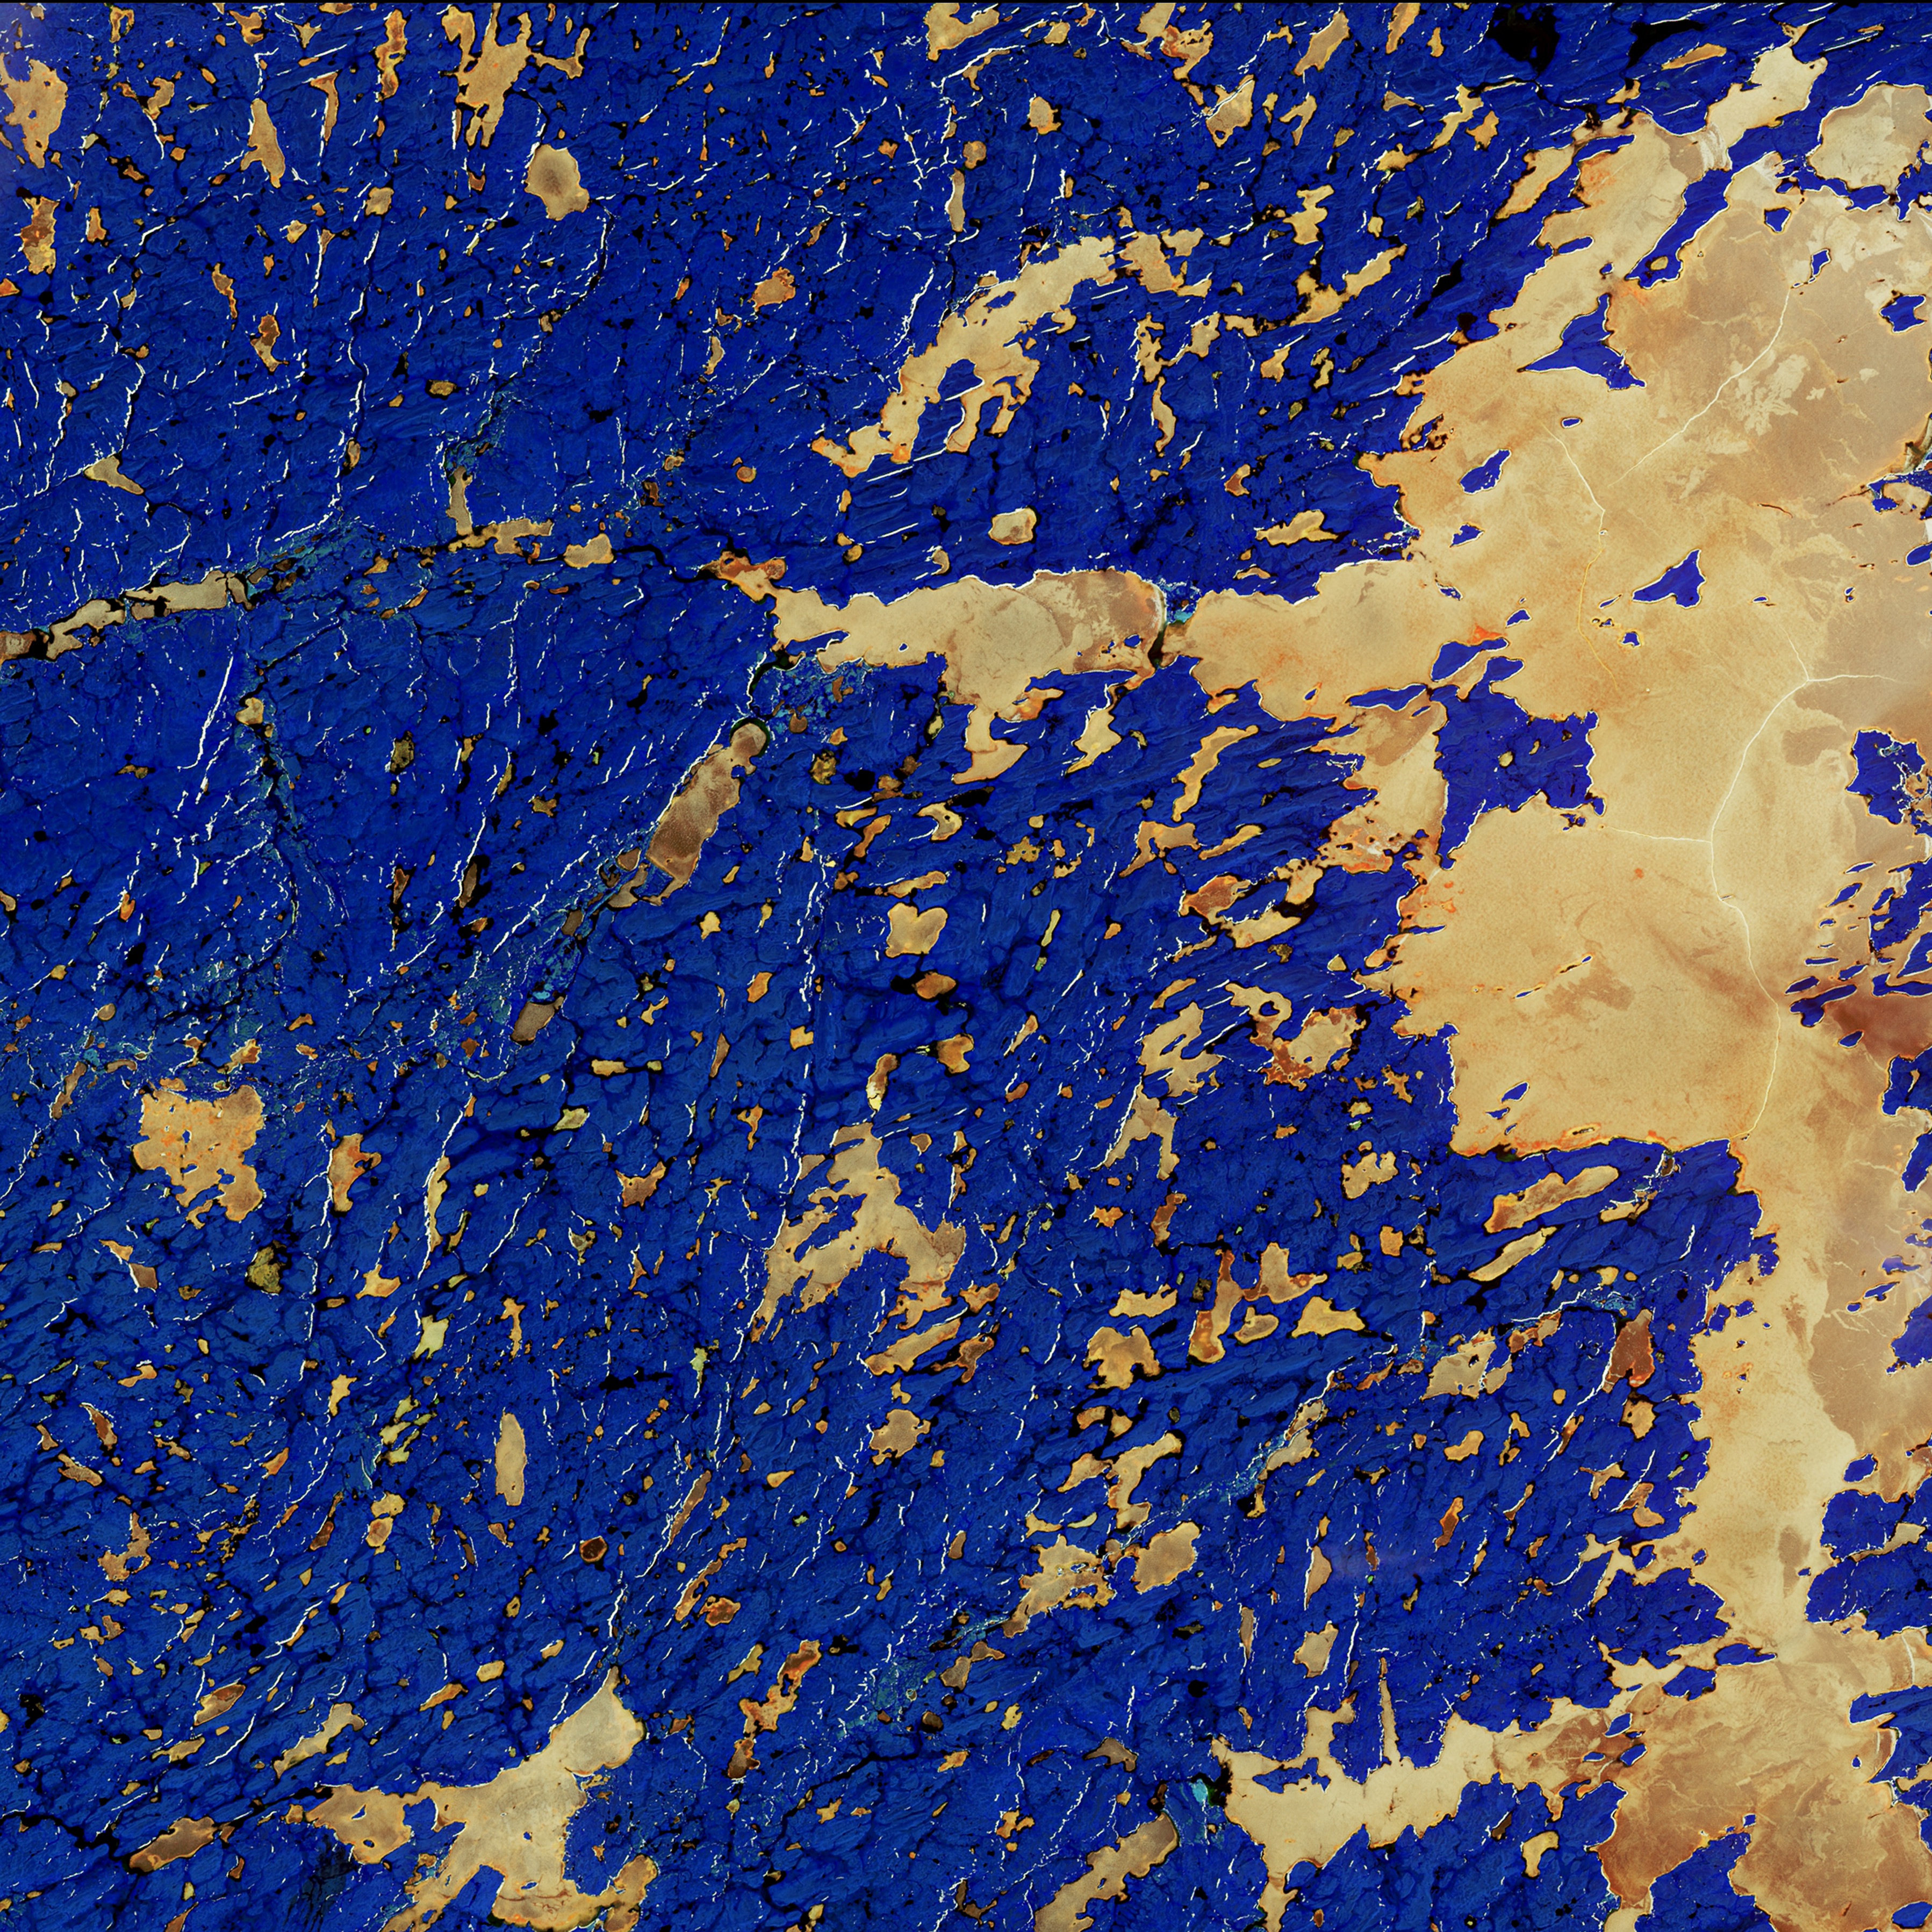 The copper colour in this infrared combination is the presence of lake ice in the Northwest Territories in northern Canada. The lake on the right side is Whitefish Lake, in a region with numerous glacial landforms. Bright wrinkle-like lines are eskers, ridges made of sand and gravel formed by glacial sediments deposited by meltwater rivers flowing on the ice. The blue colour is land dominated by shrub tundra with some spruce stands.